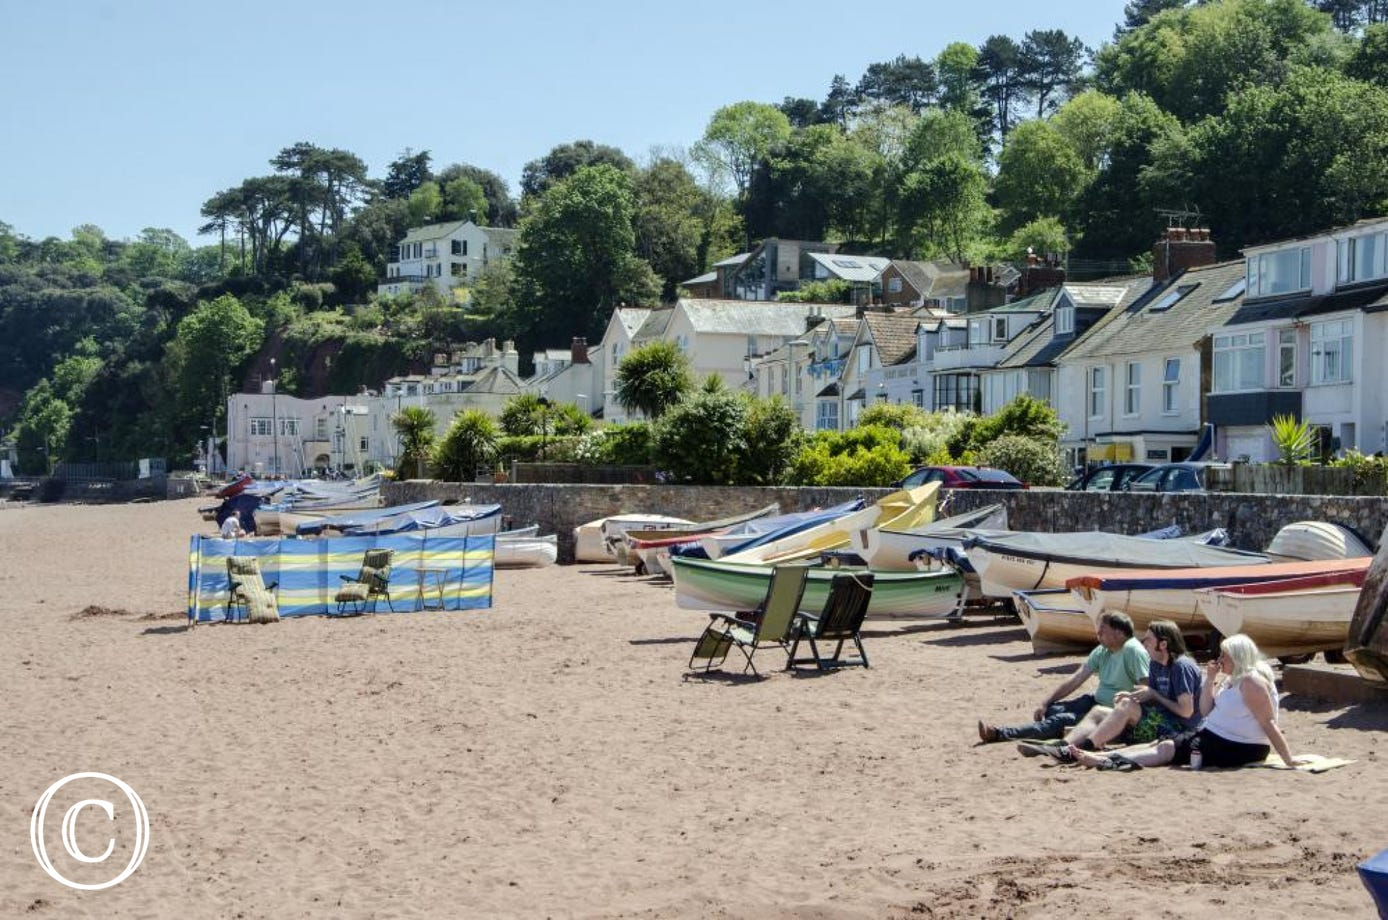 Shaldon Beach just 2 minutes away!